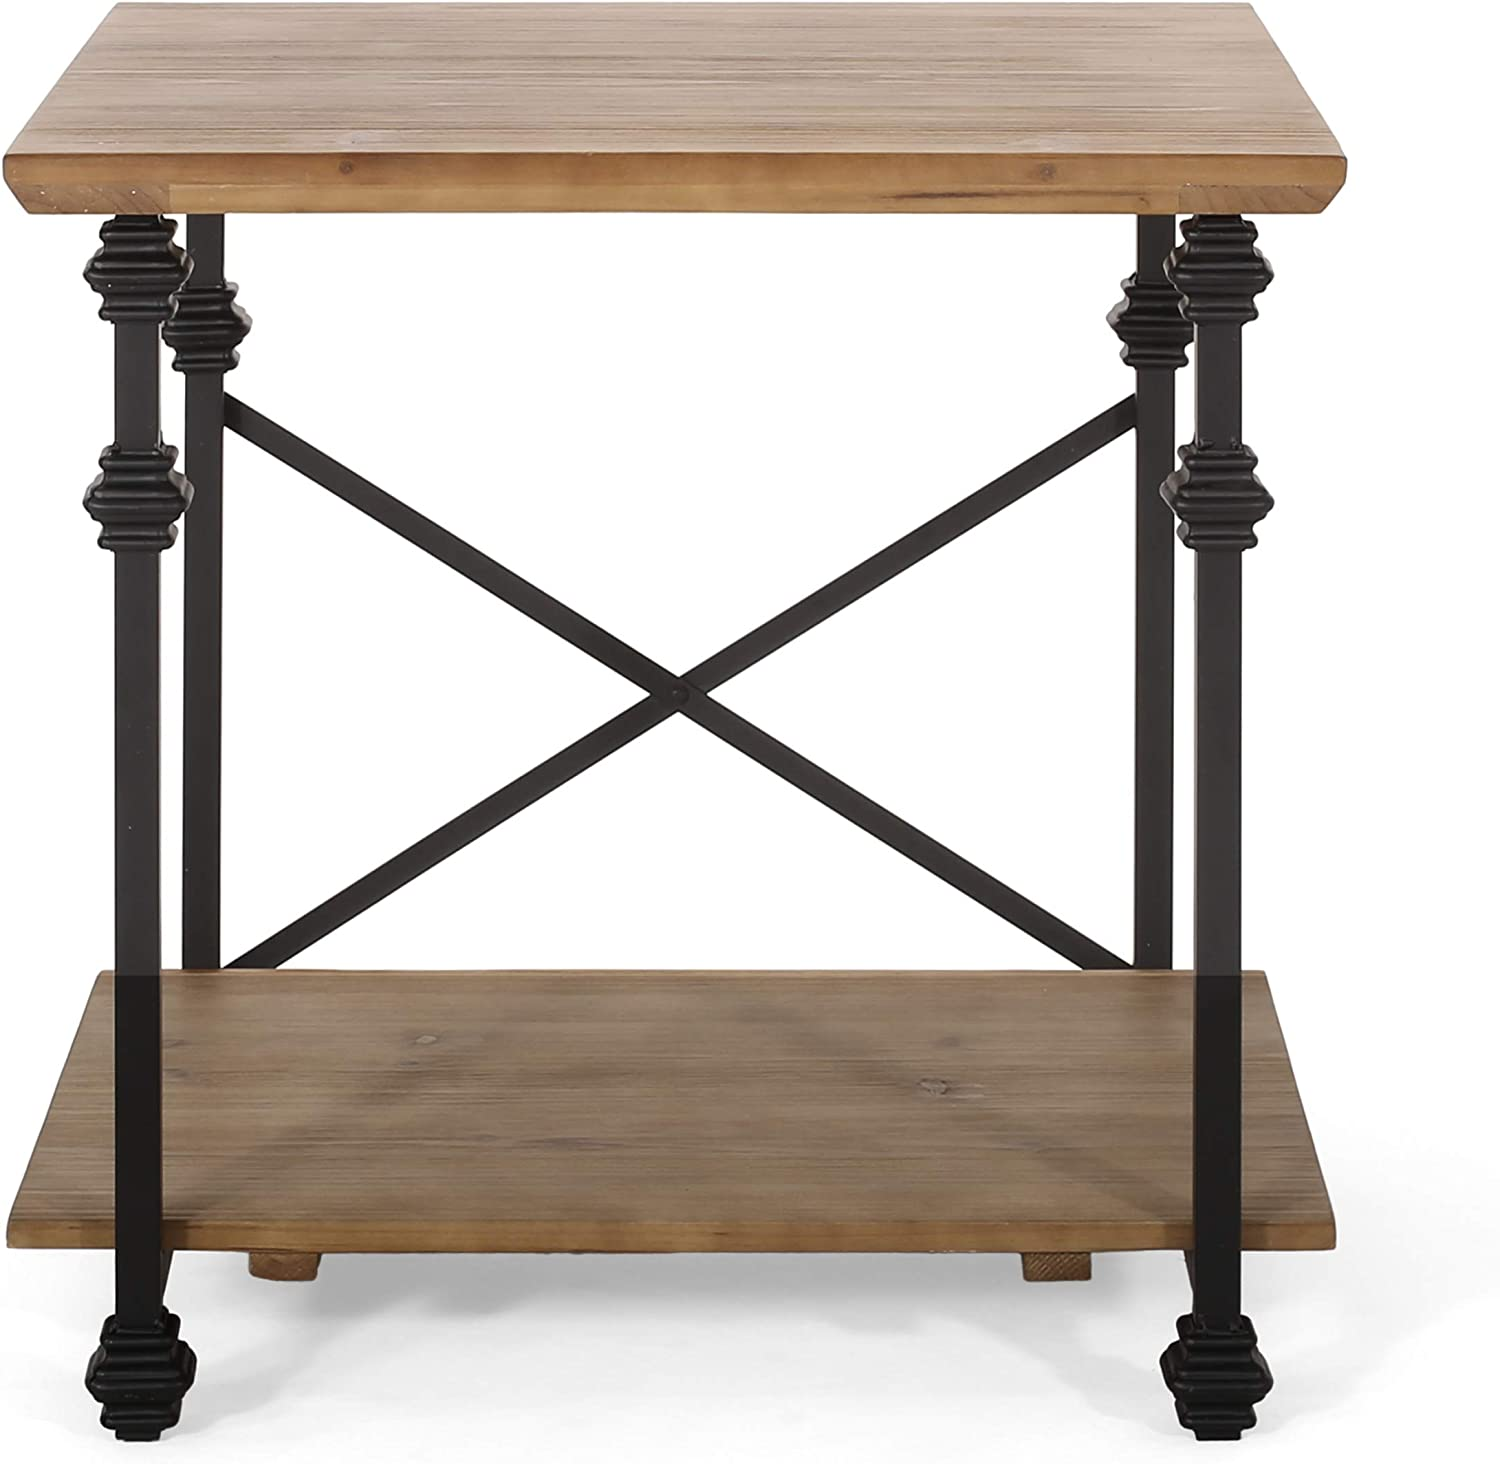 Christopher Knight Home Max 67% OFF Sibyl End Brown Table Fixed price for sale Antique Black